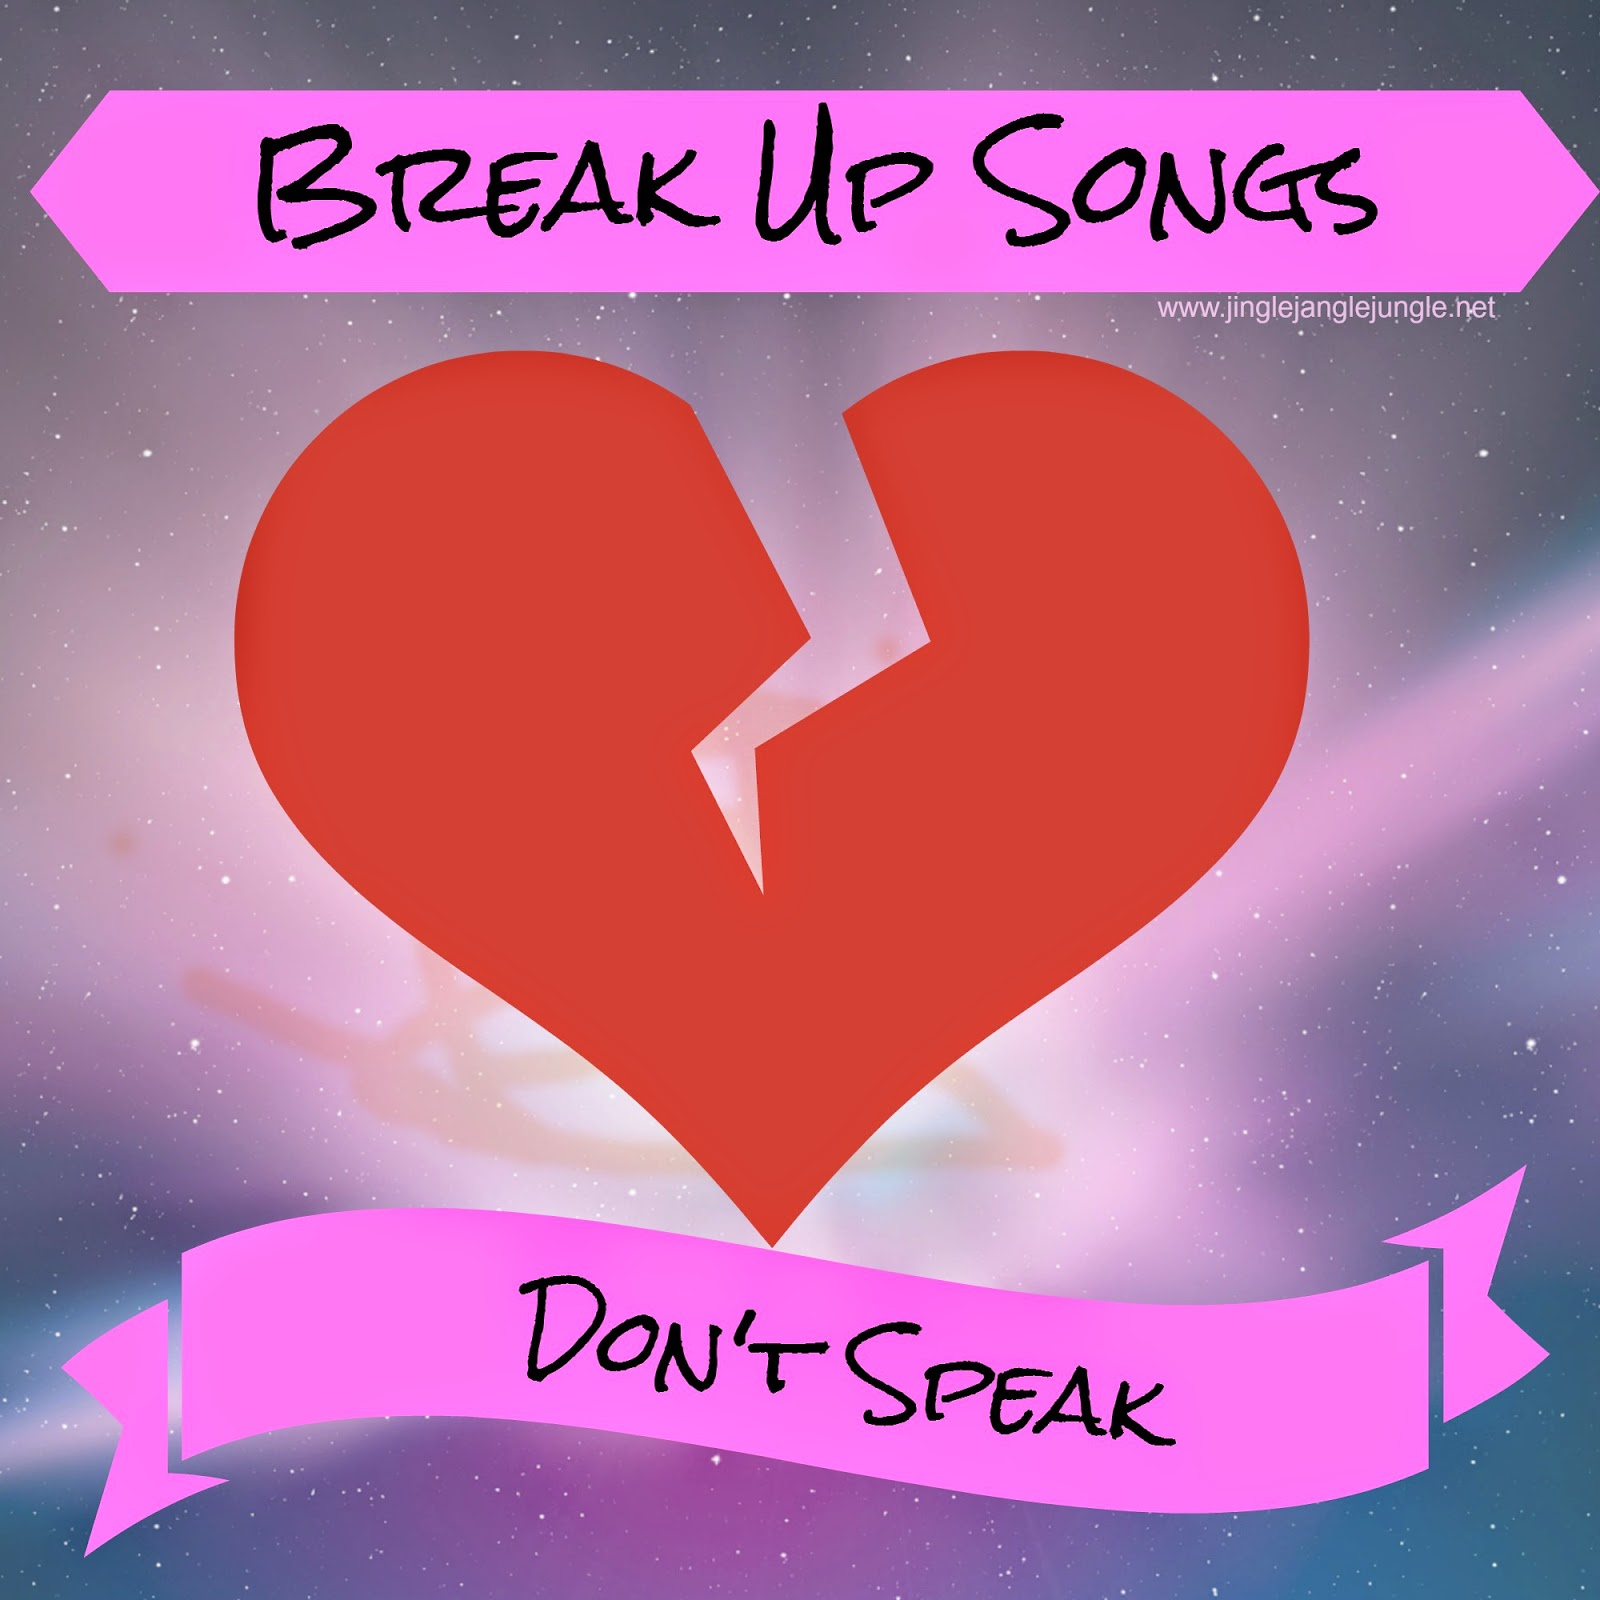 Break Up Songs: Don't Speak http://www.jinglejanglejungle.net/2015/02/dont-speak.html #BreakUpSongs